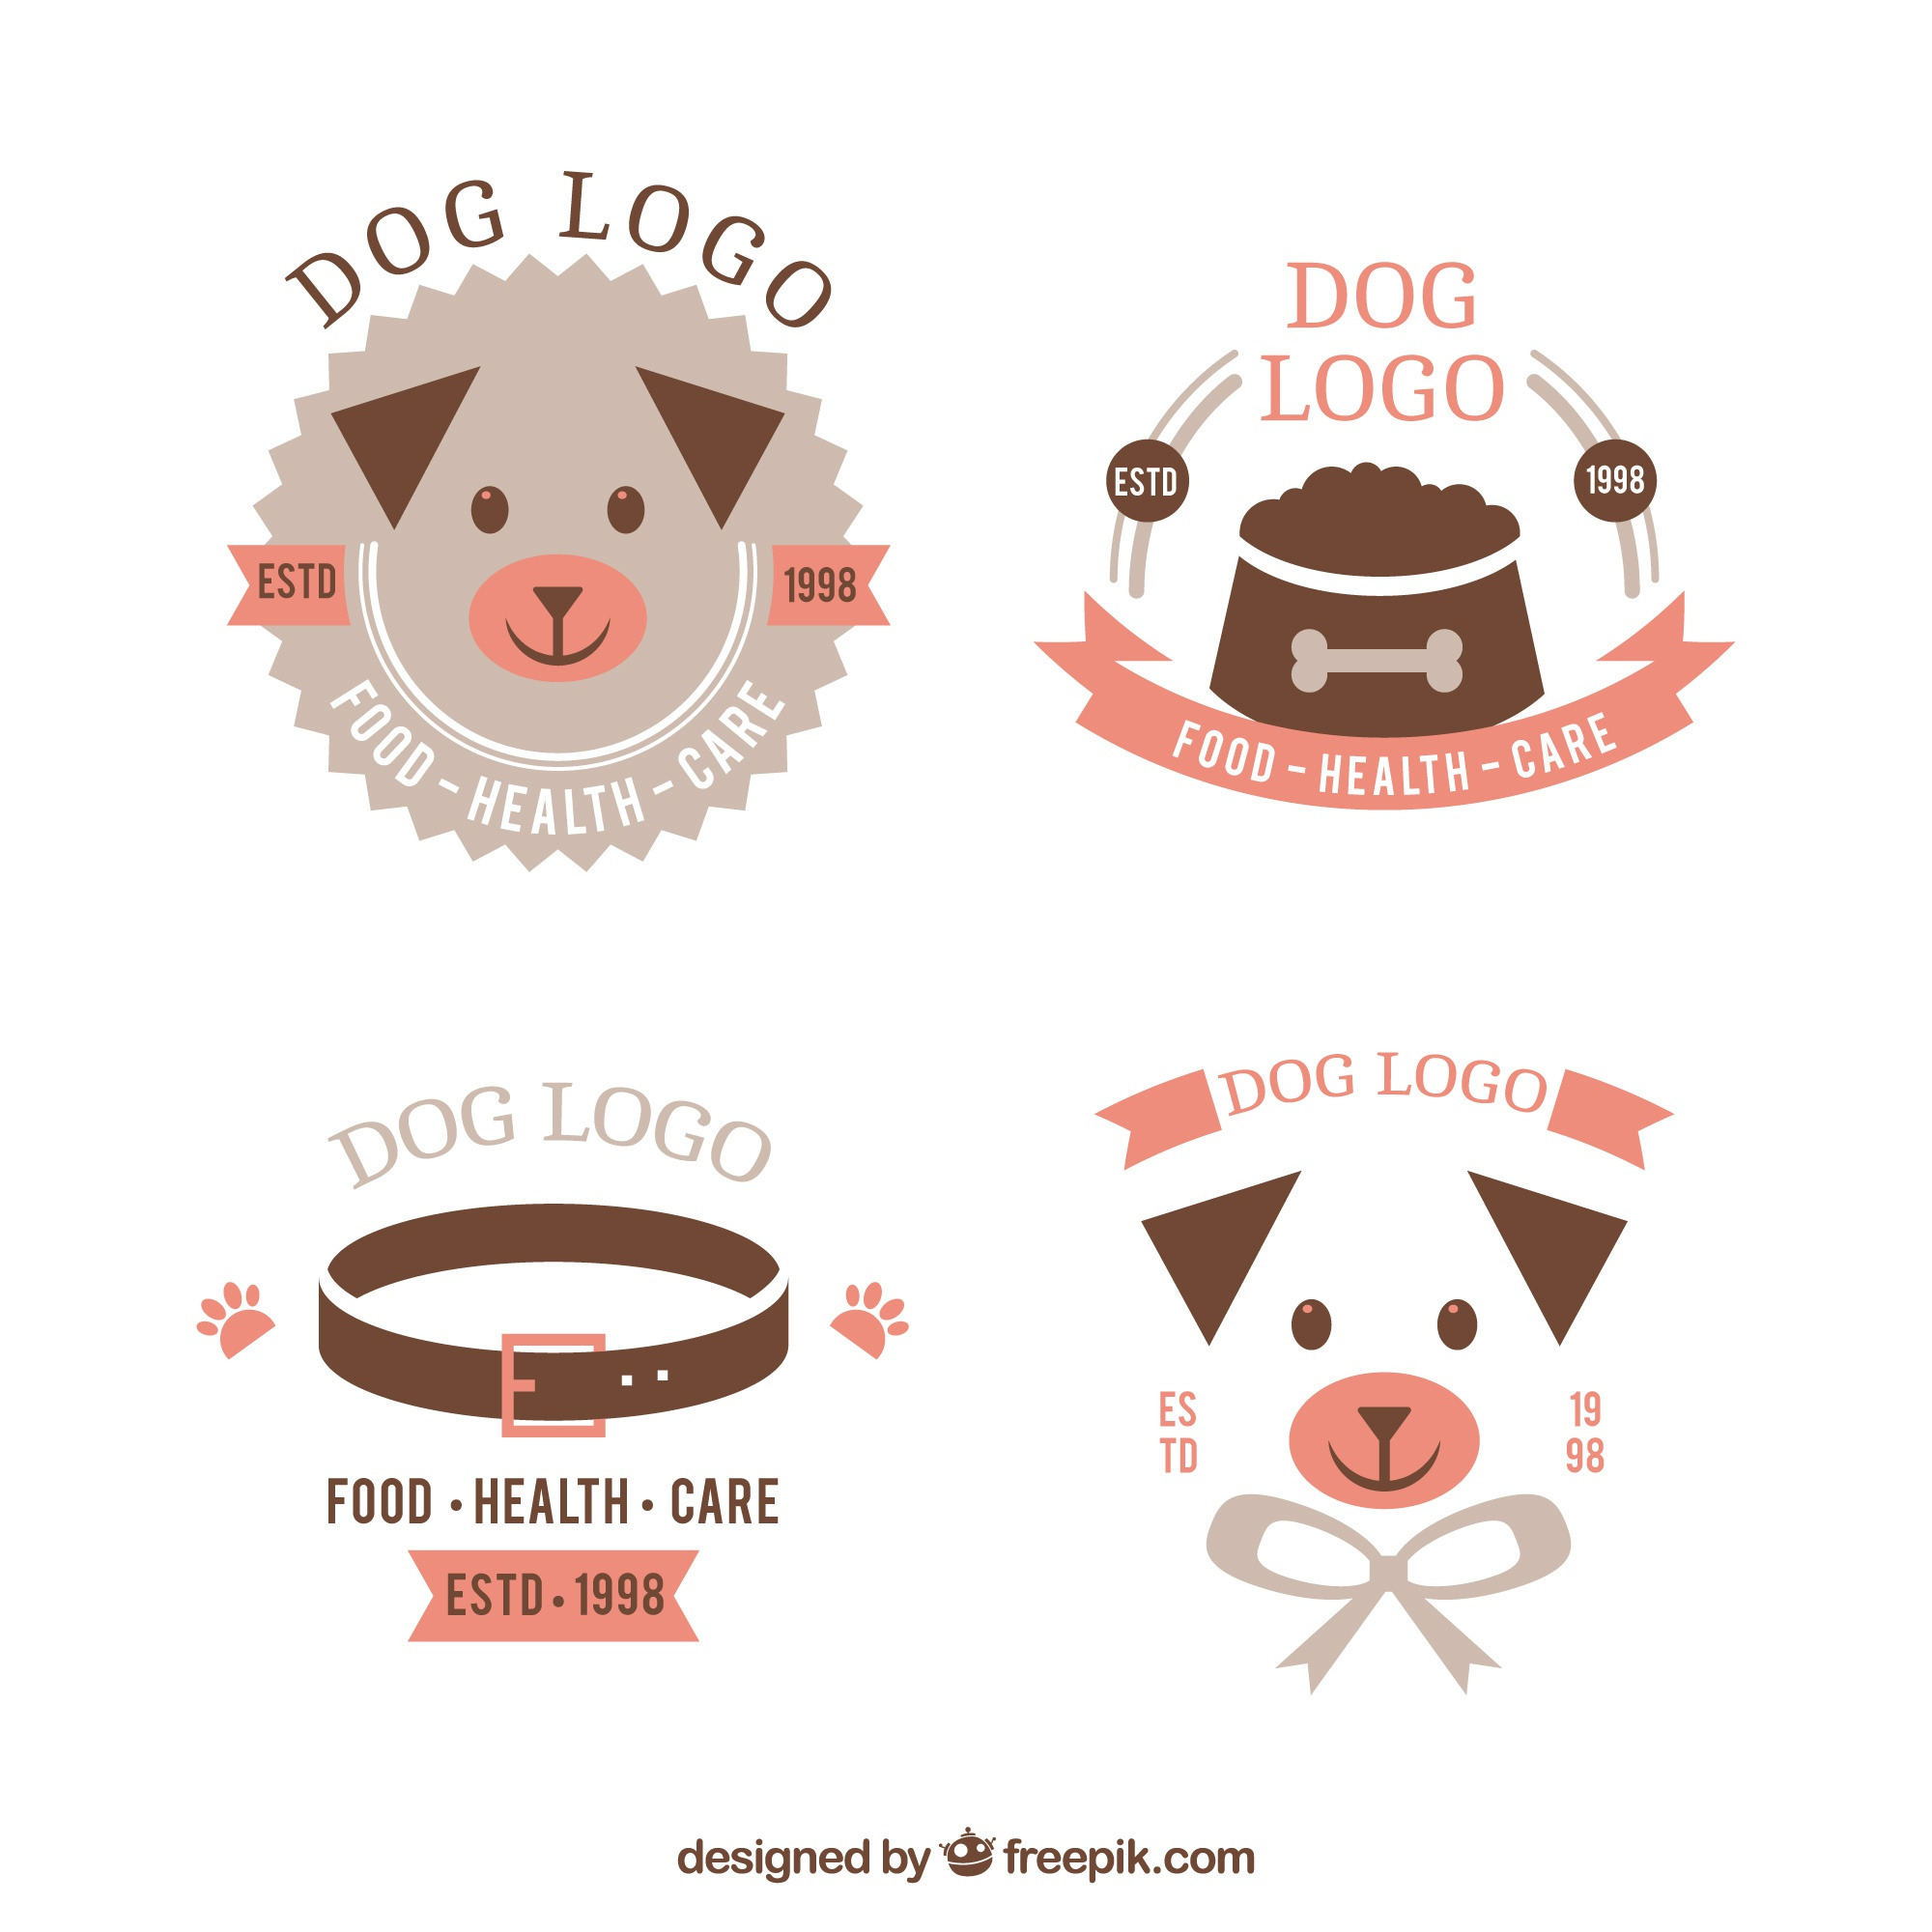 Selection of flat dog logos with pink details